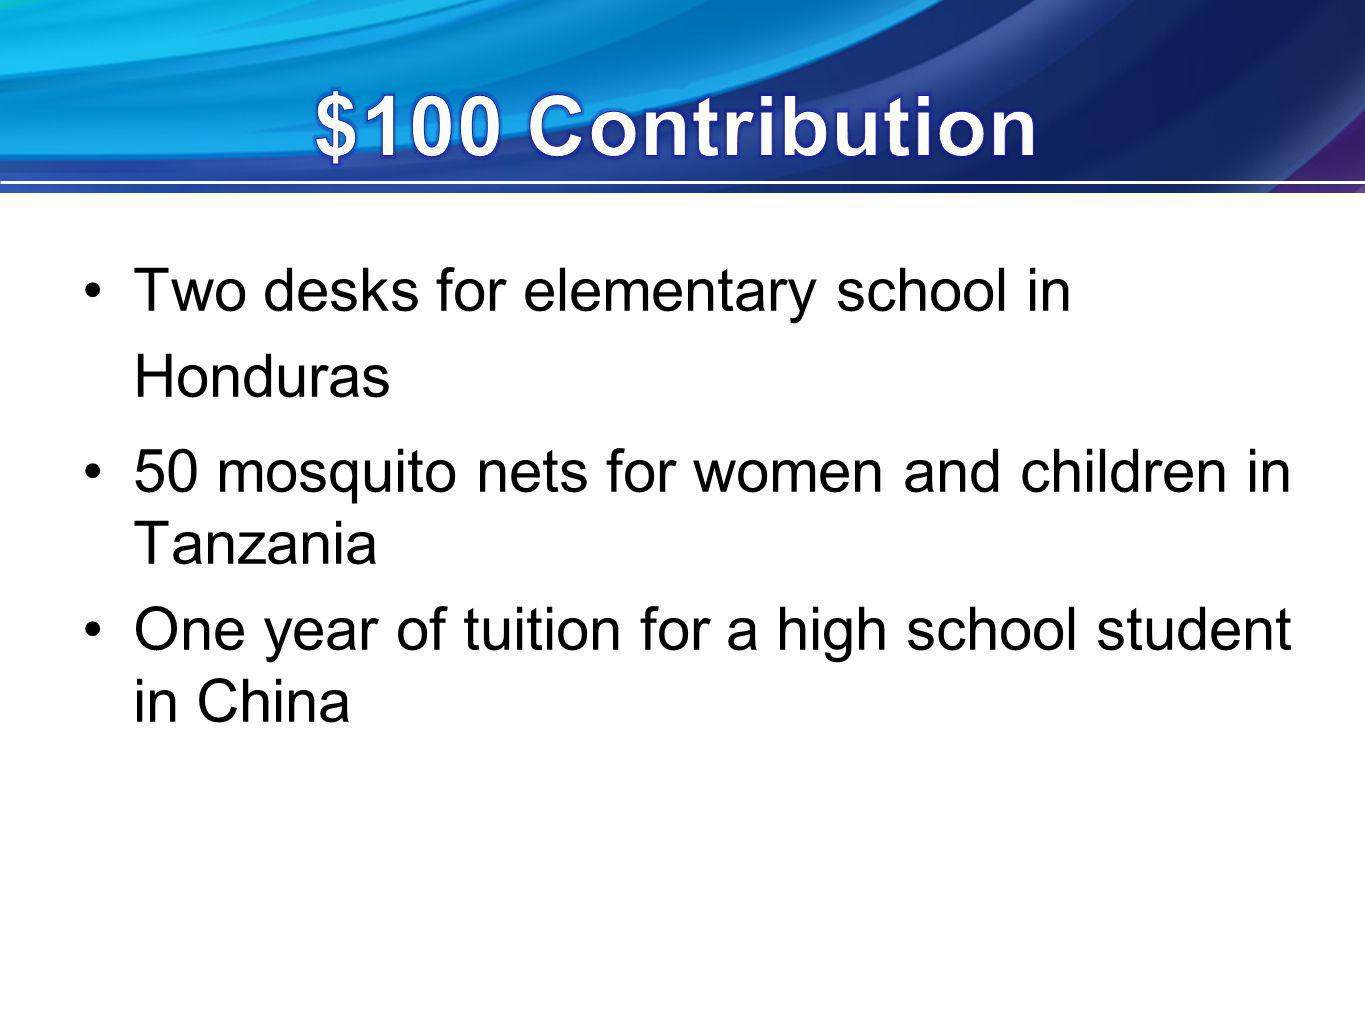 Two desks for elementary school in Honduras 50 mosquito nets for women and children in Tanzania One year of tuition for a high school student in China